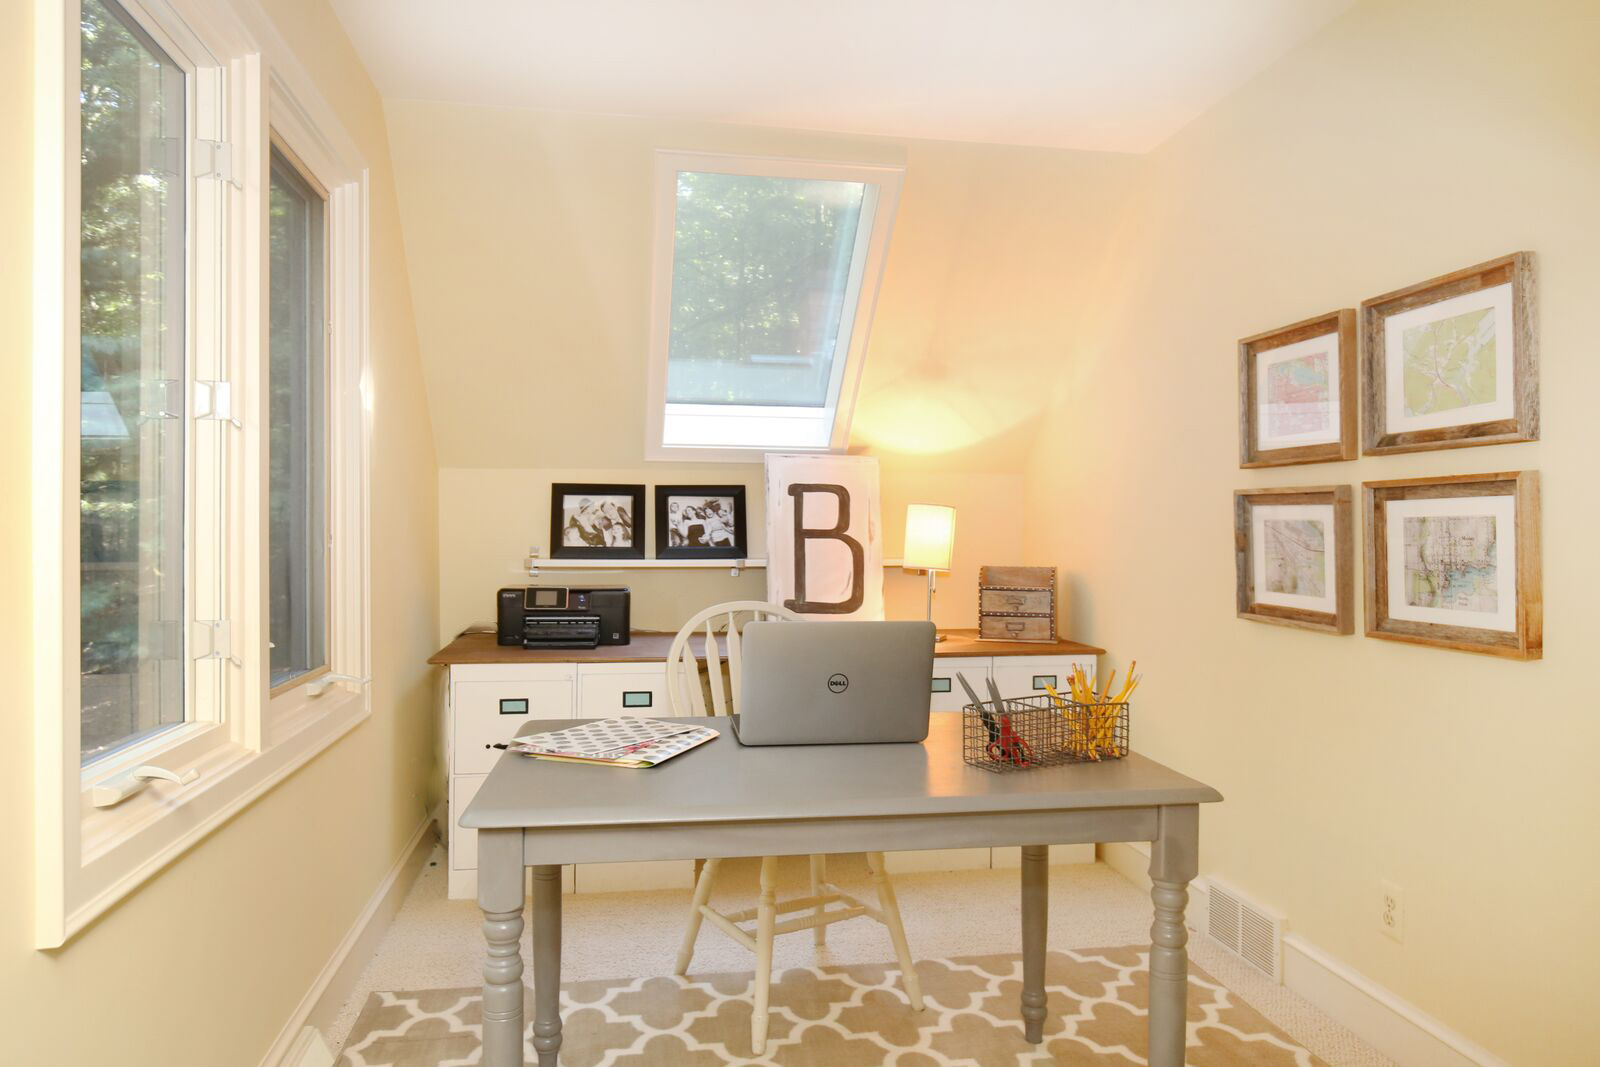 remodelaholic | $250 budget home office makeover with diy filing